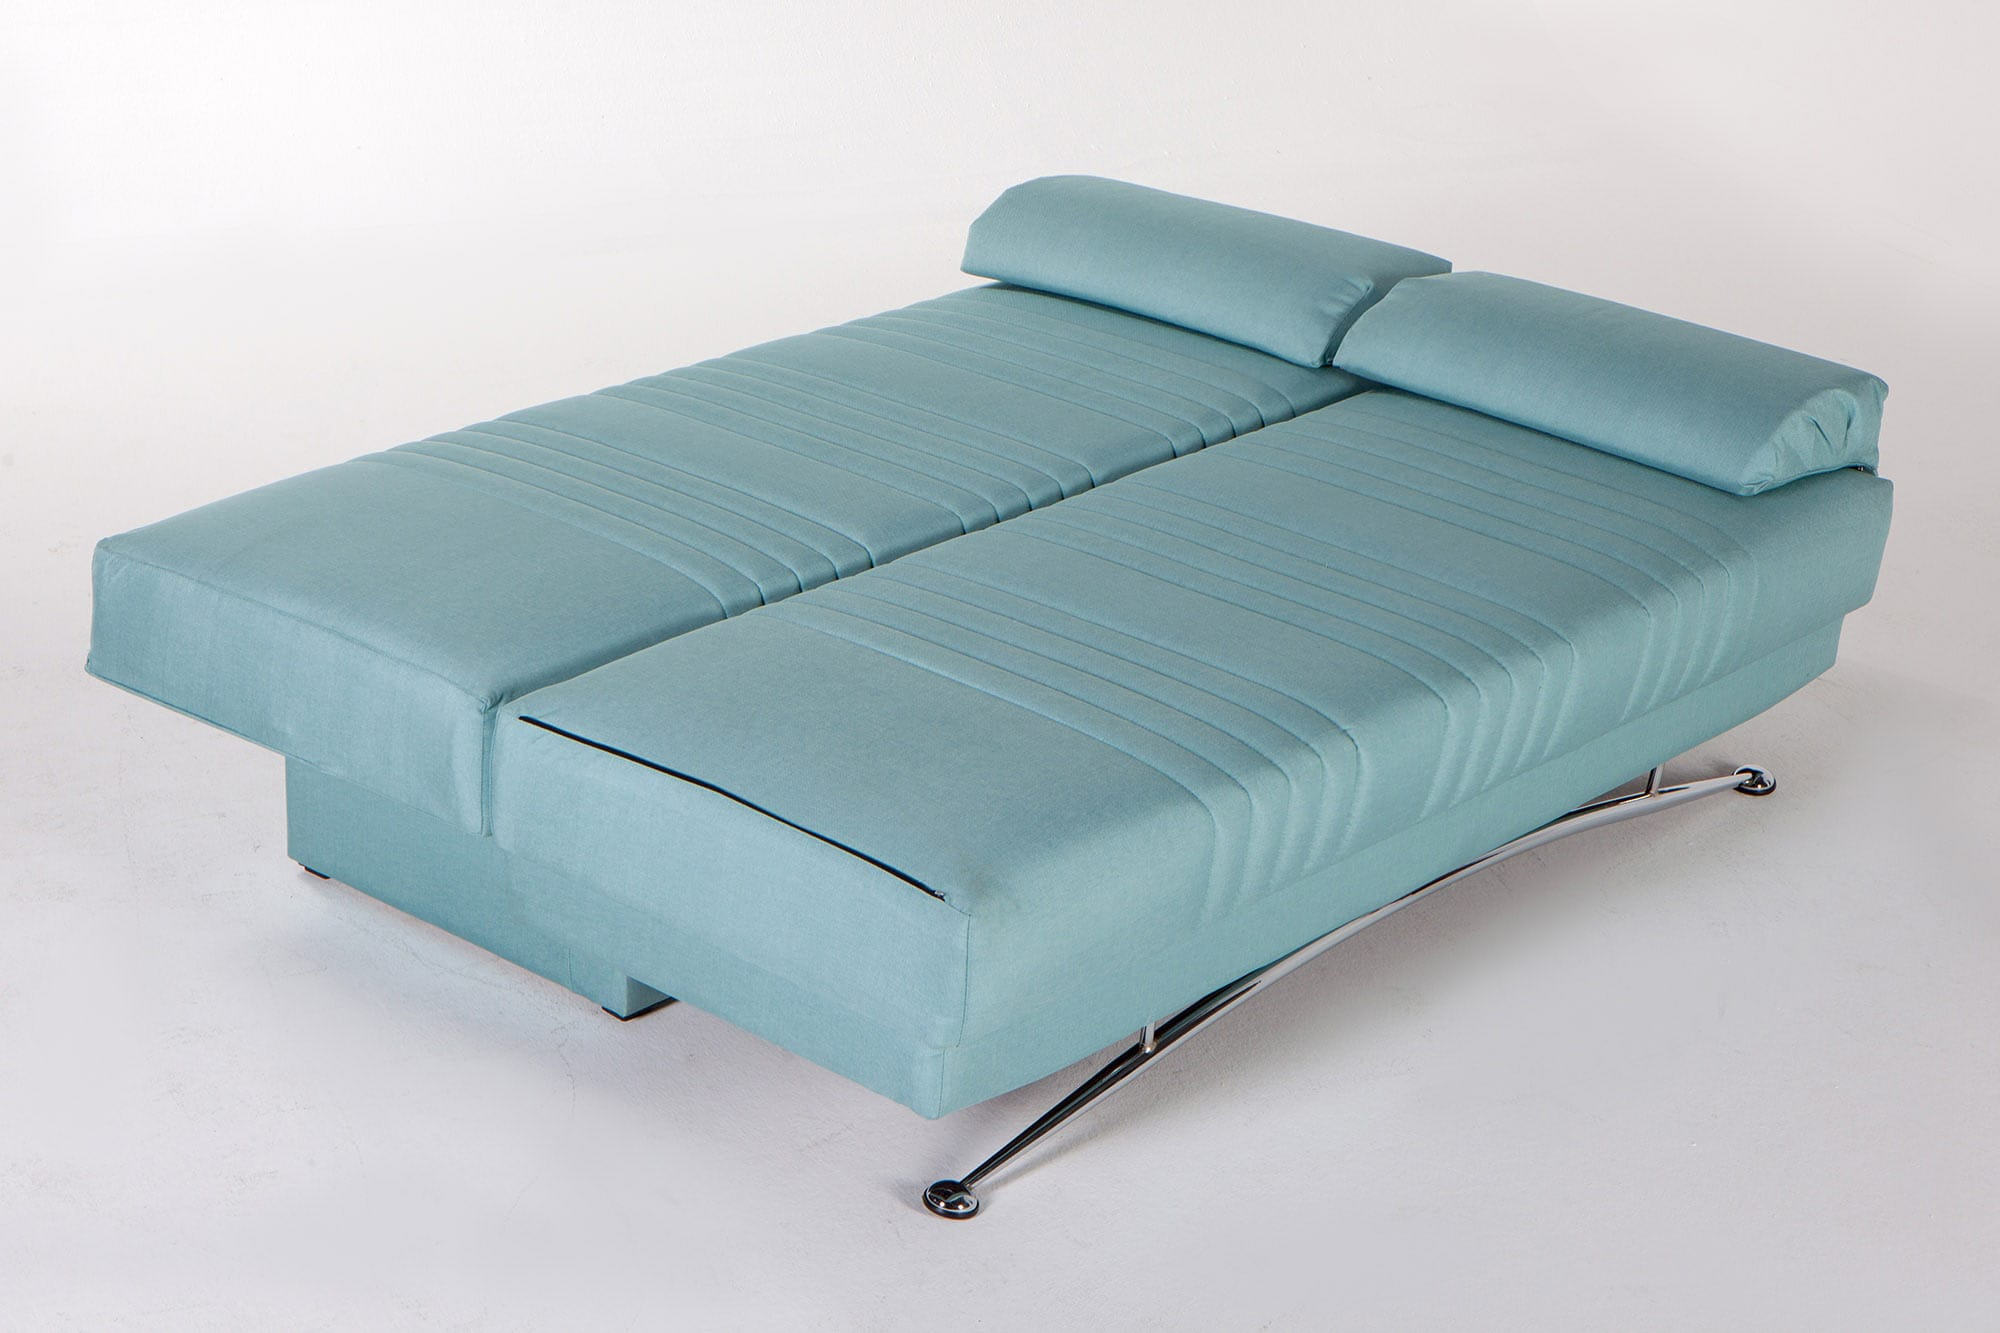 Fantasy Coton Seafoam Green Convertible Sofa Bed by Istikbal Furniture